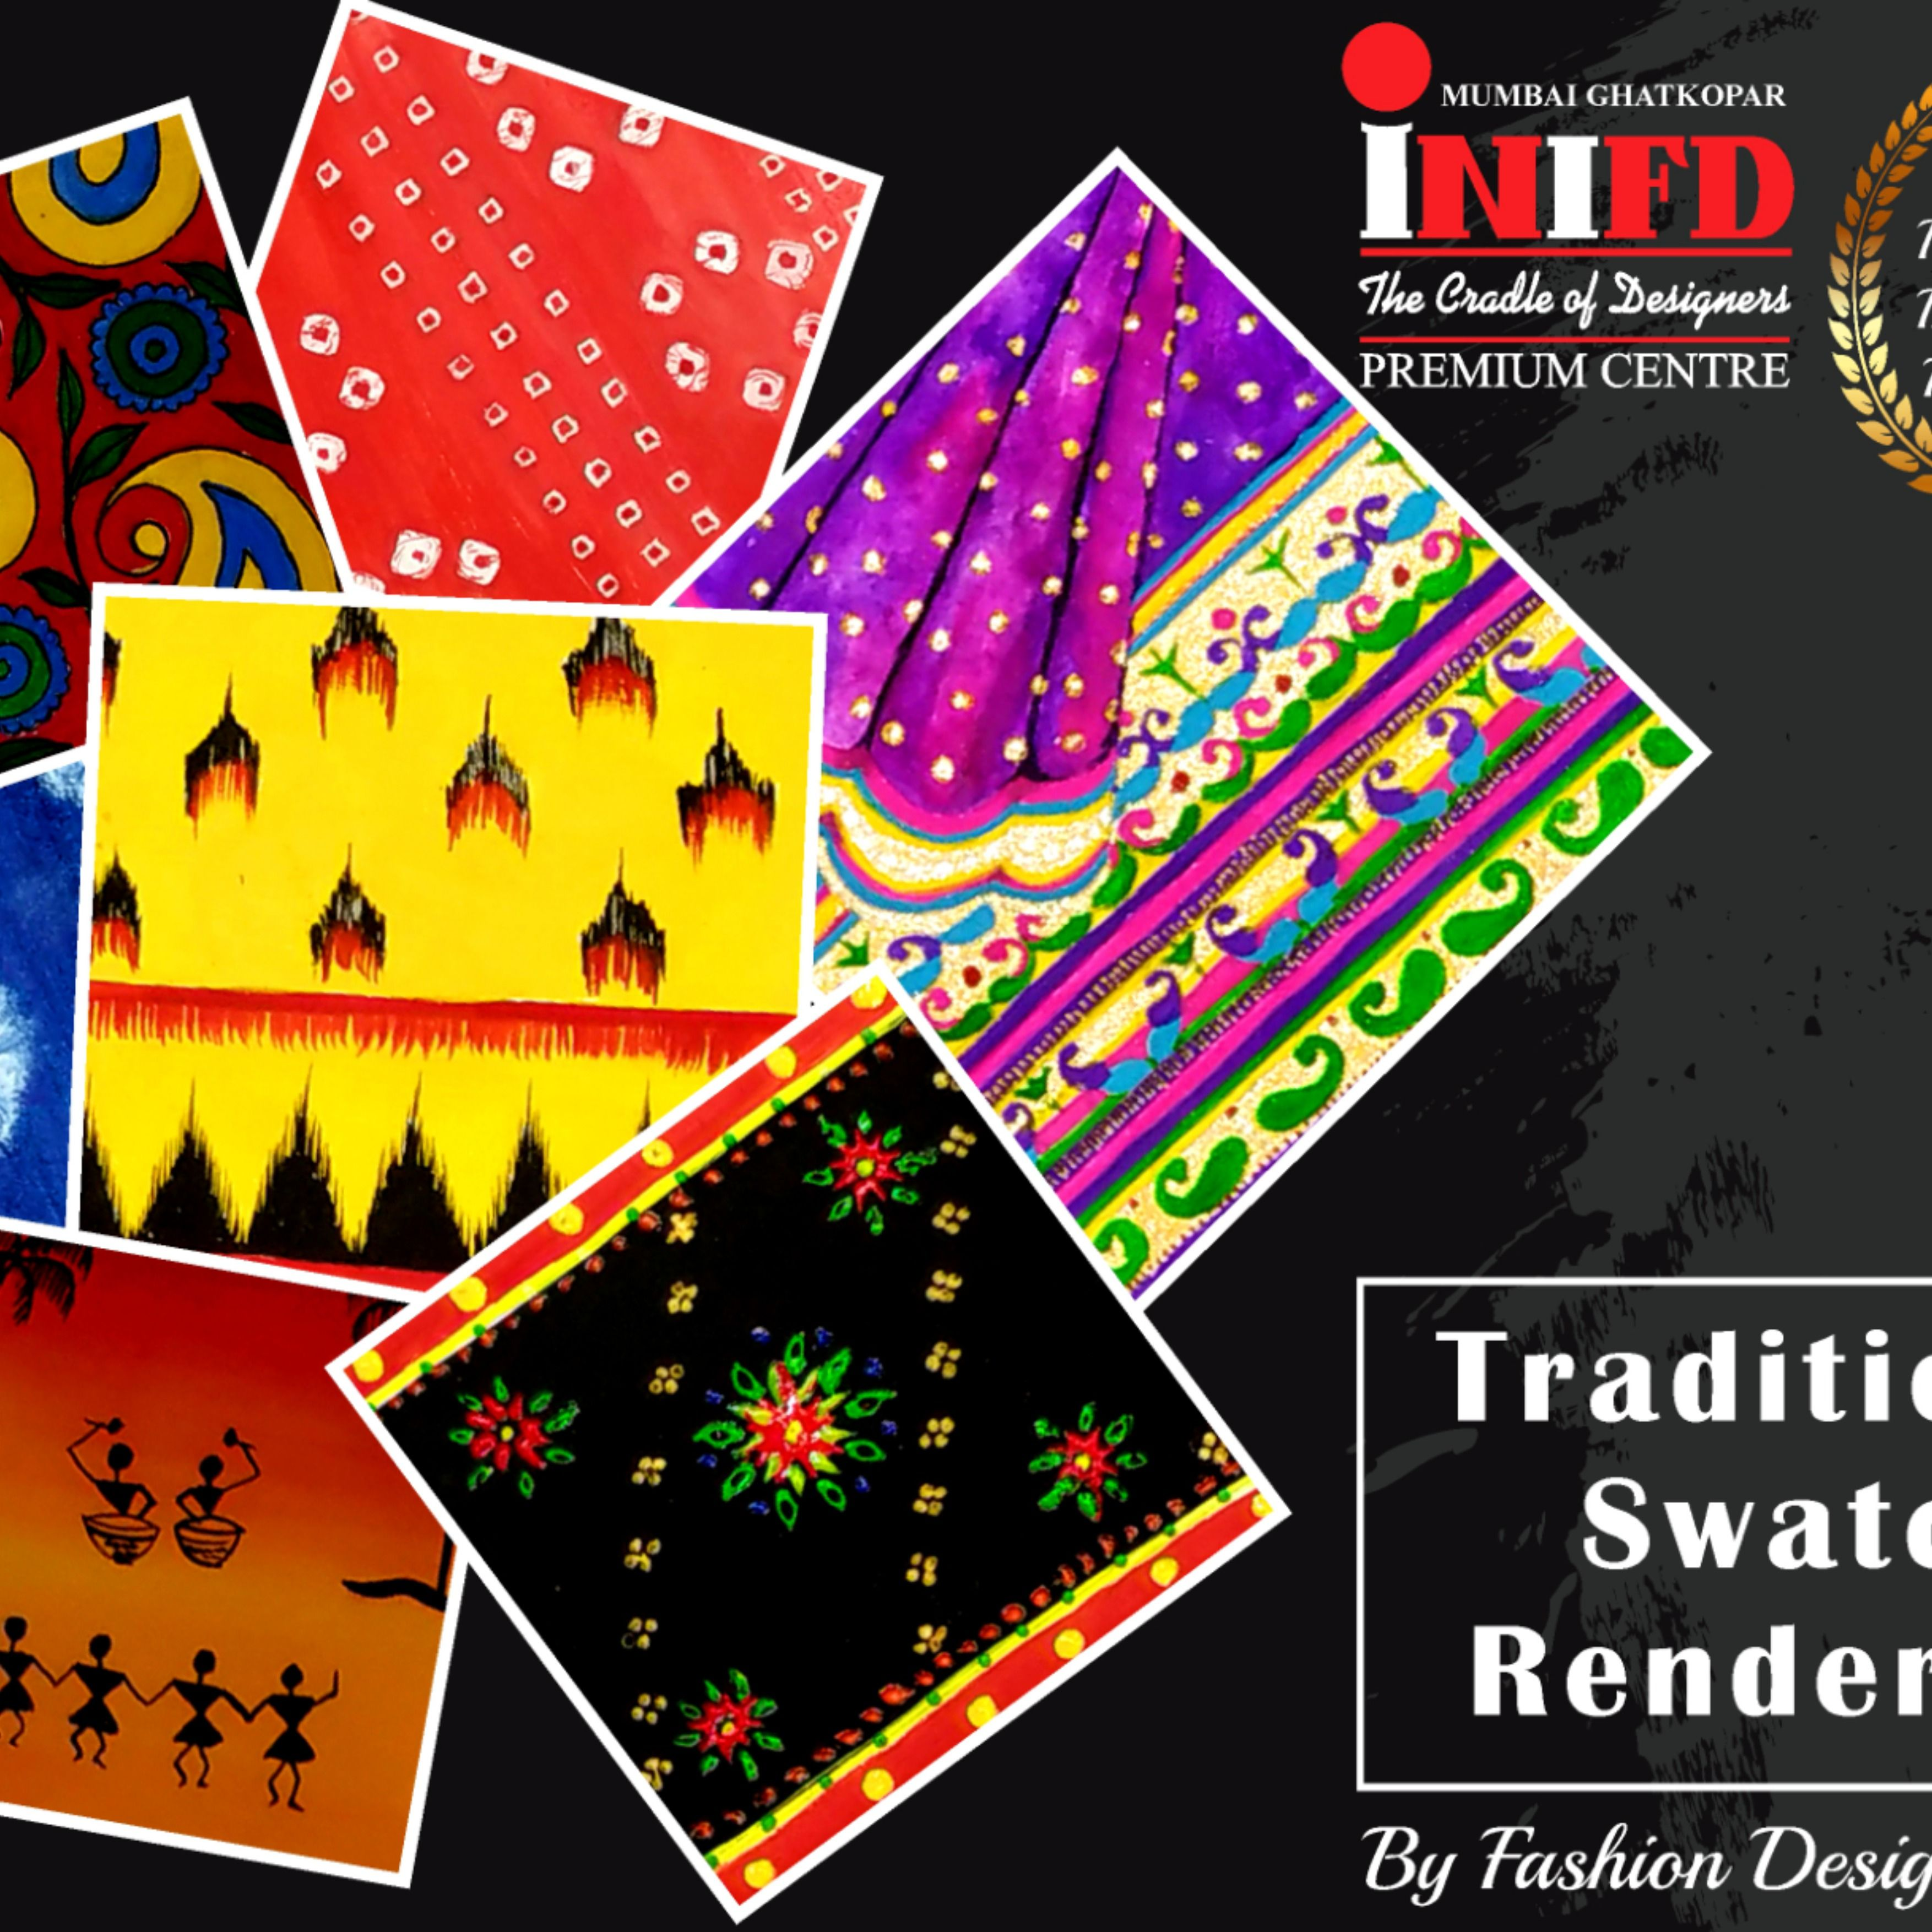 Traditional Swatch Rendering Explore Your Passion For Fashion With Inifd Mumbai Ghatkopar To Know More About In 2020 Interior Design Institute Design Course Design